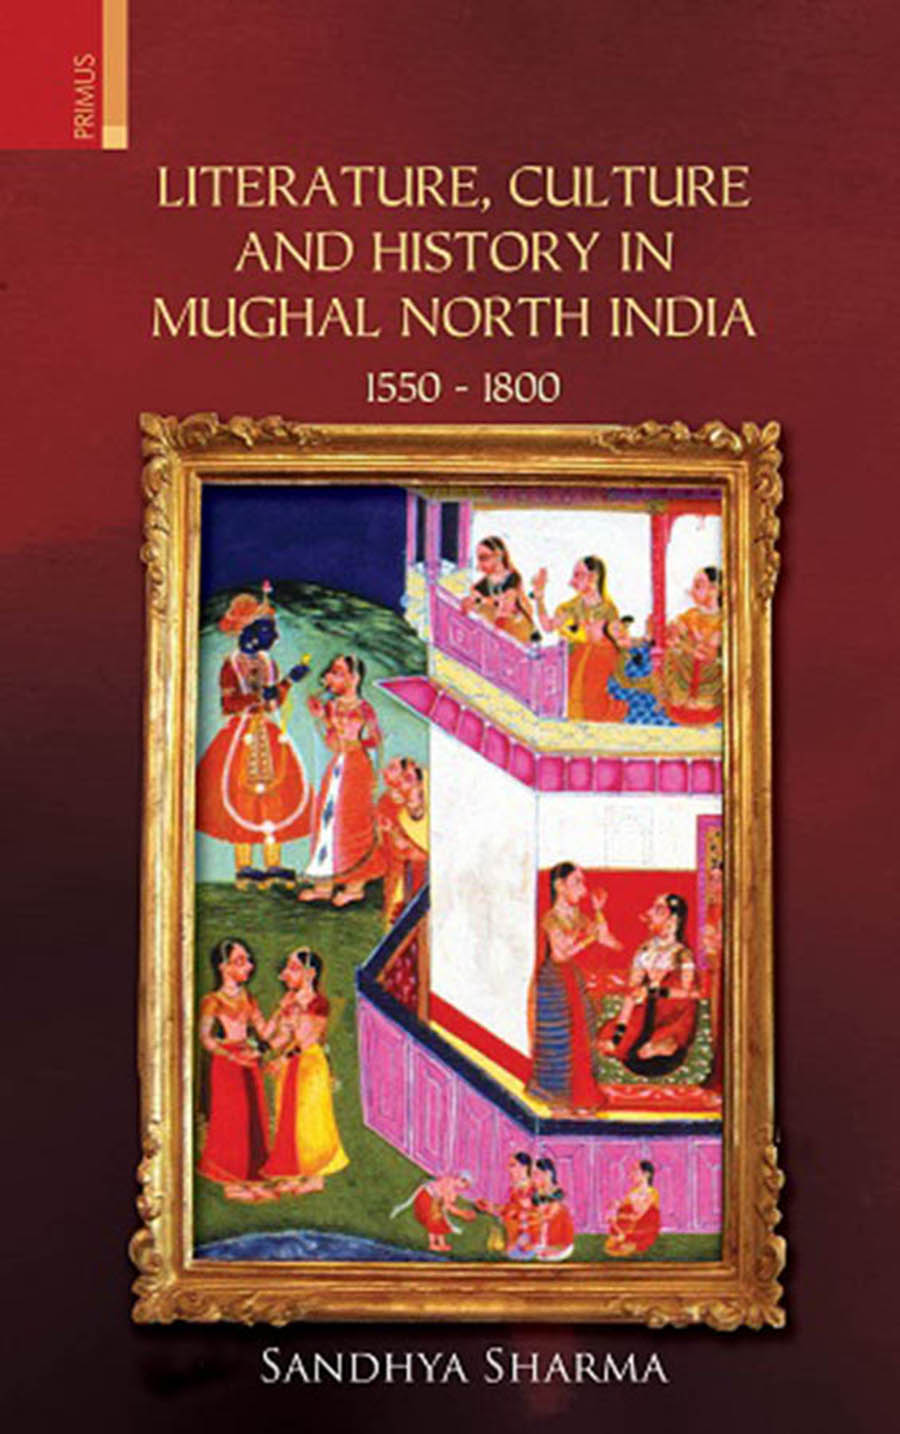 Literature, Culture and History in Mughal North India 1550 - 1800